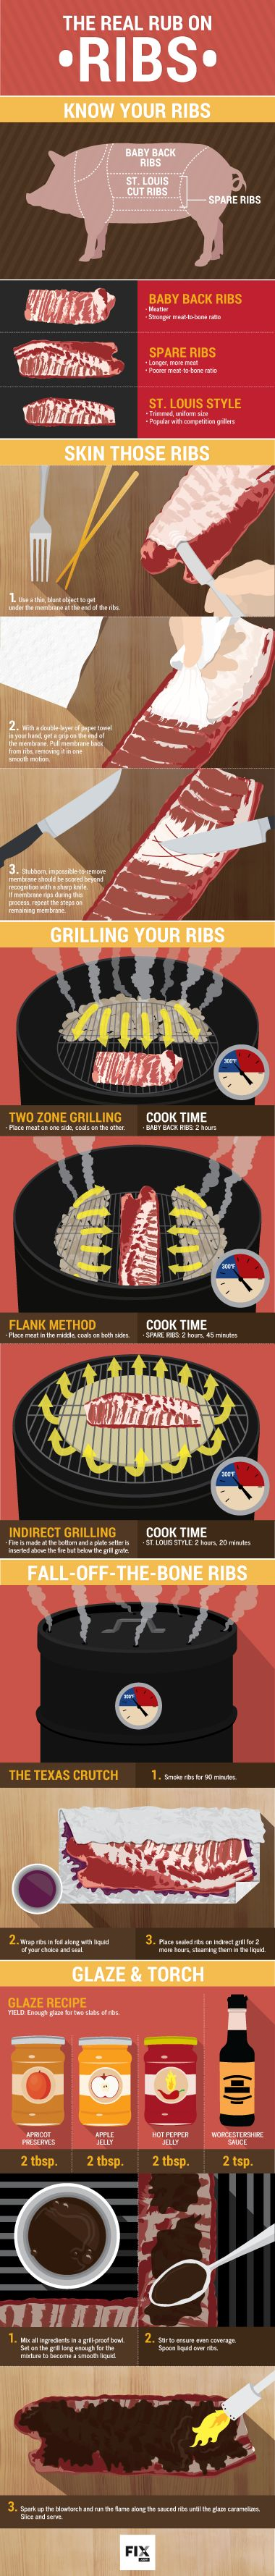 7 Fantastic Pork Infographics That Everyone Who Cooks Should Keep!